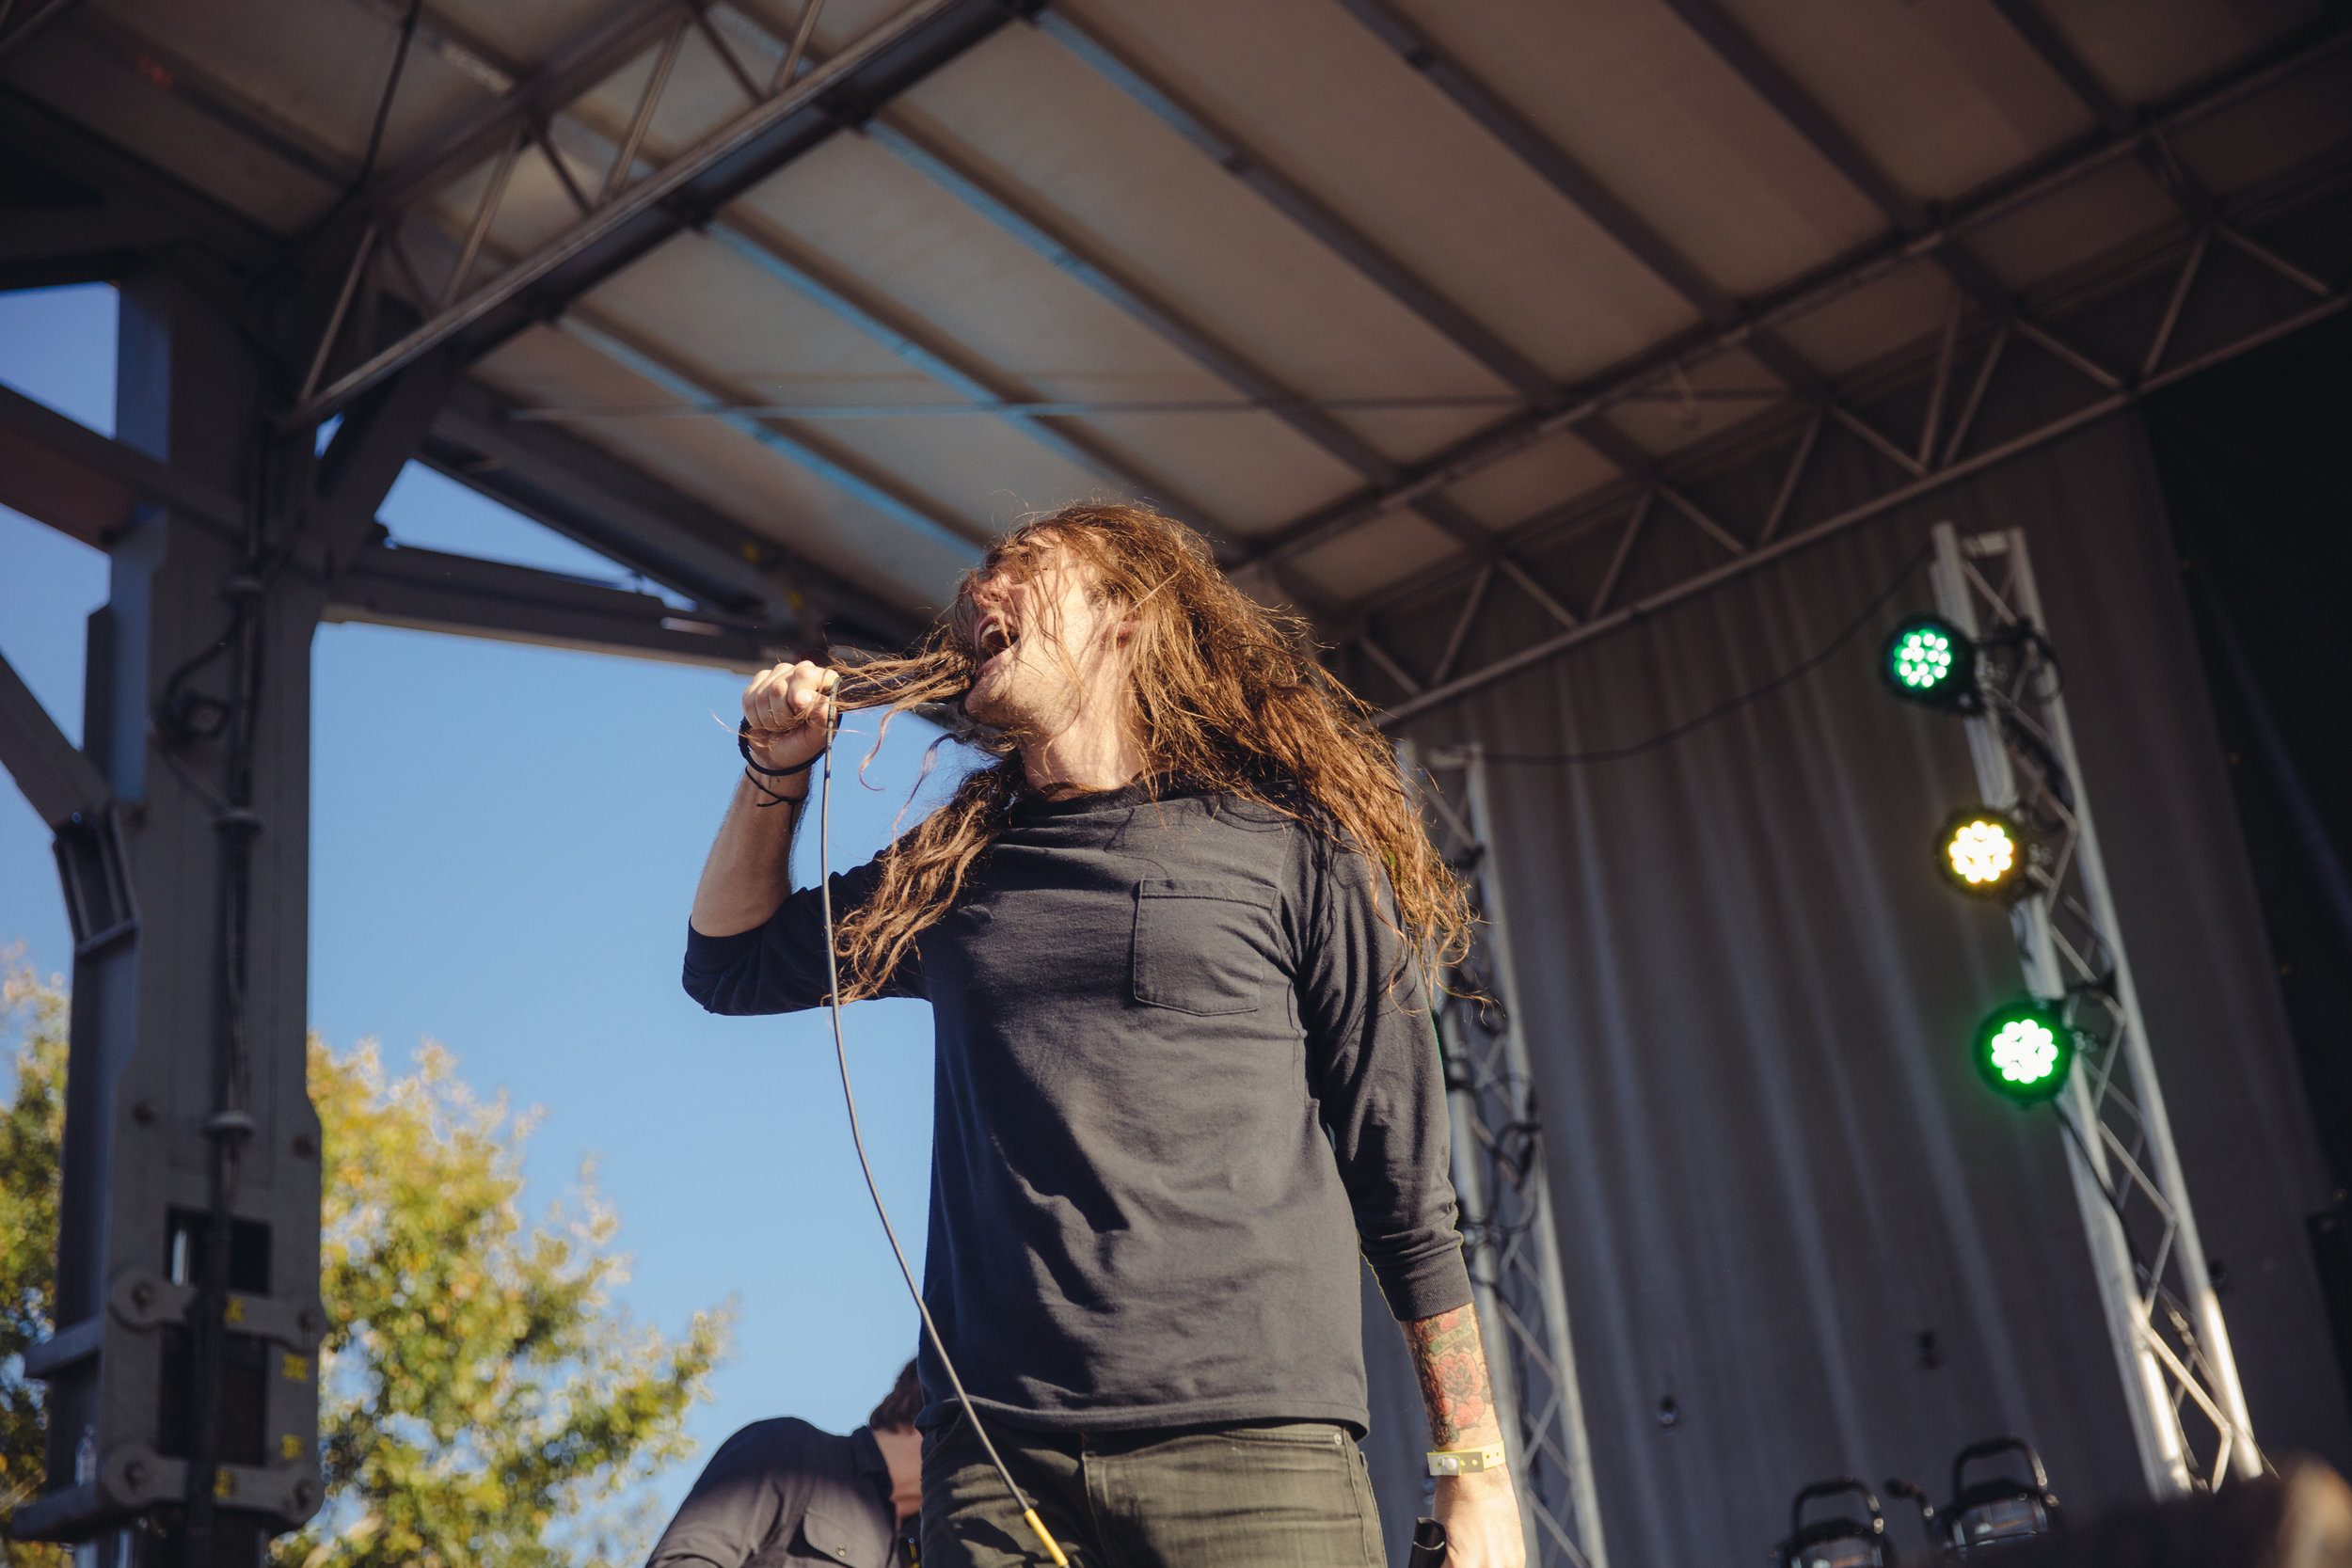 pianos-become-the-teeth---fest-14_22658455994_o.jpg